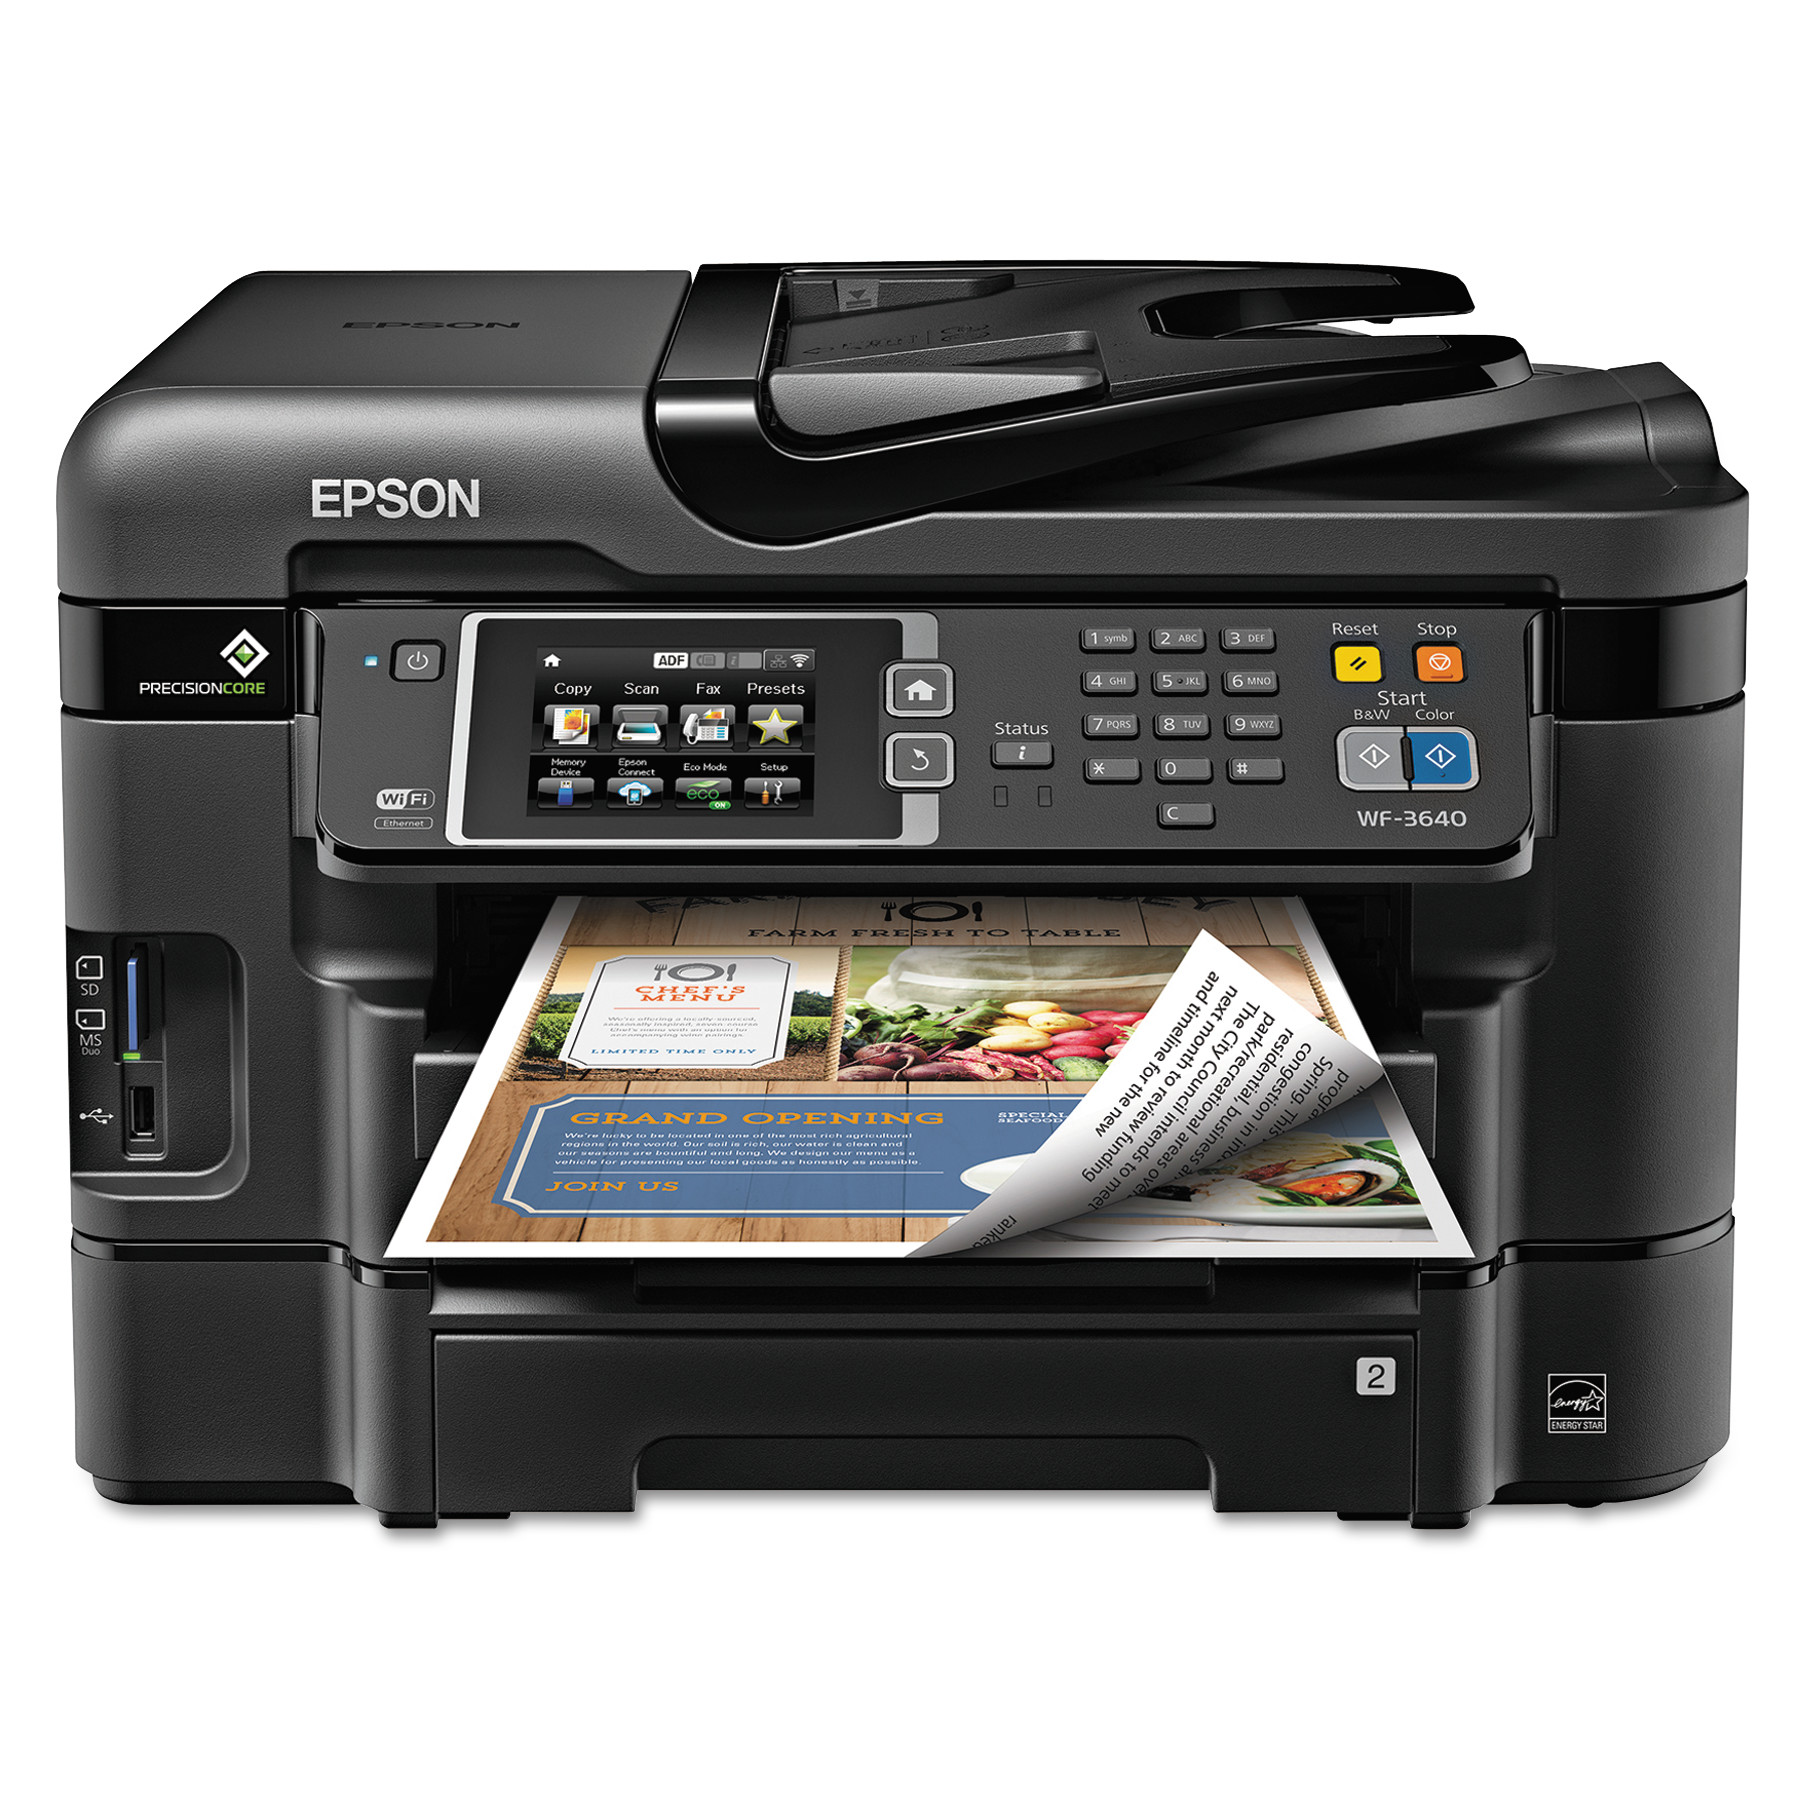 Epson WorkForce WF-3640 All-in-One Wireless Color Printer/Copier/Scanner/Fax Machine